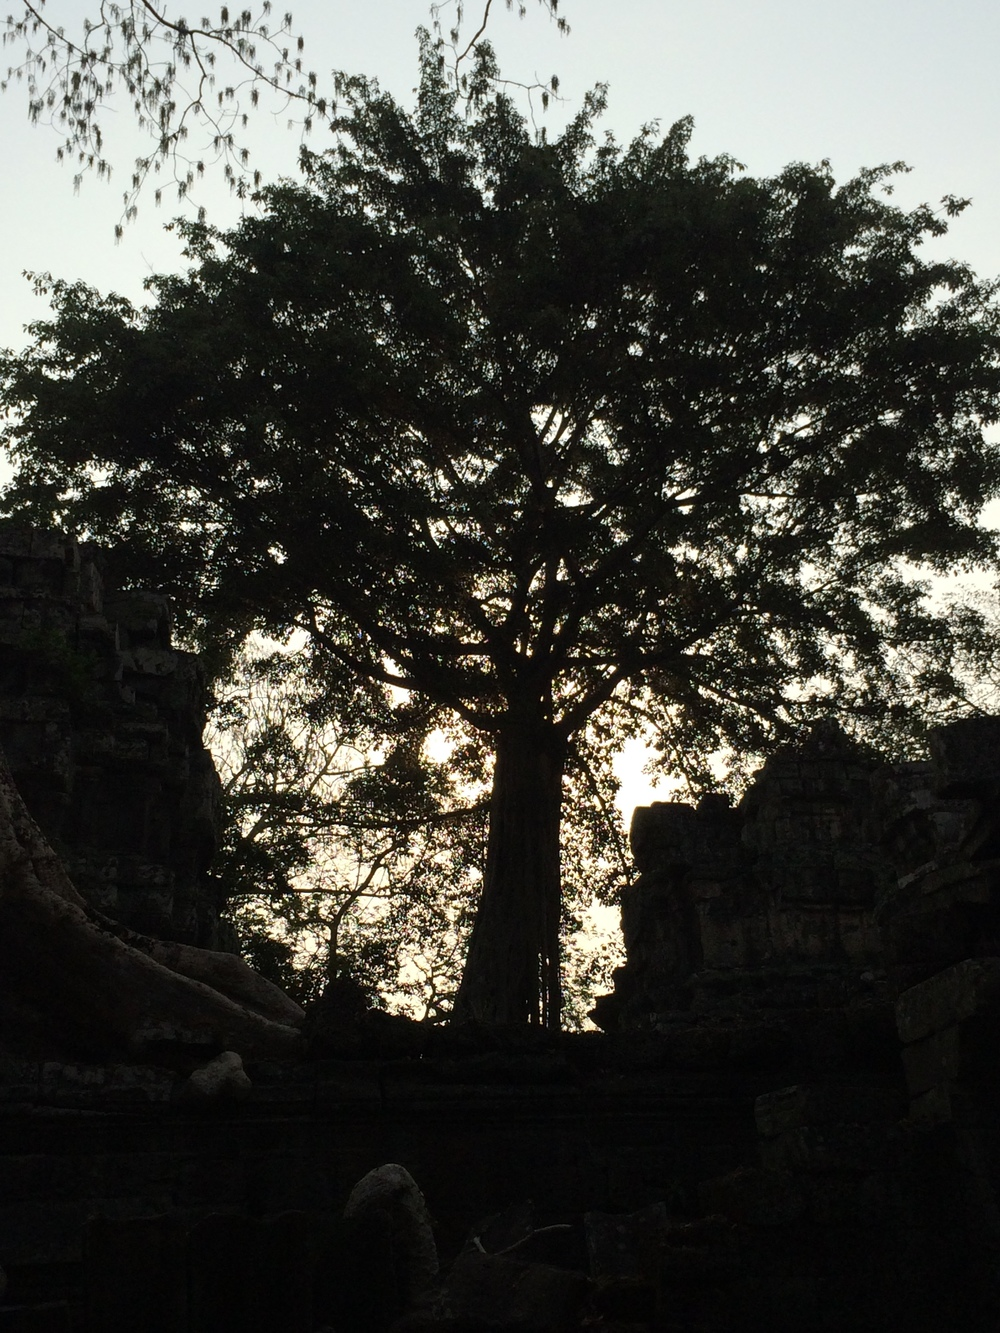 Ta Prohm (The Tomb Raider Temple)